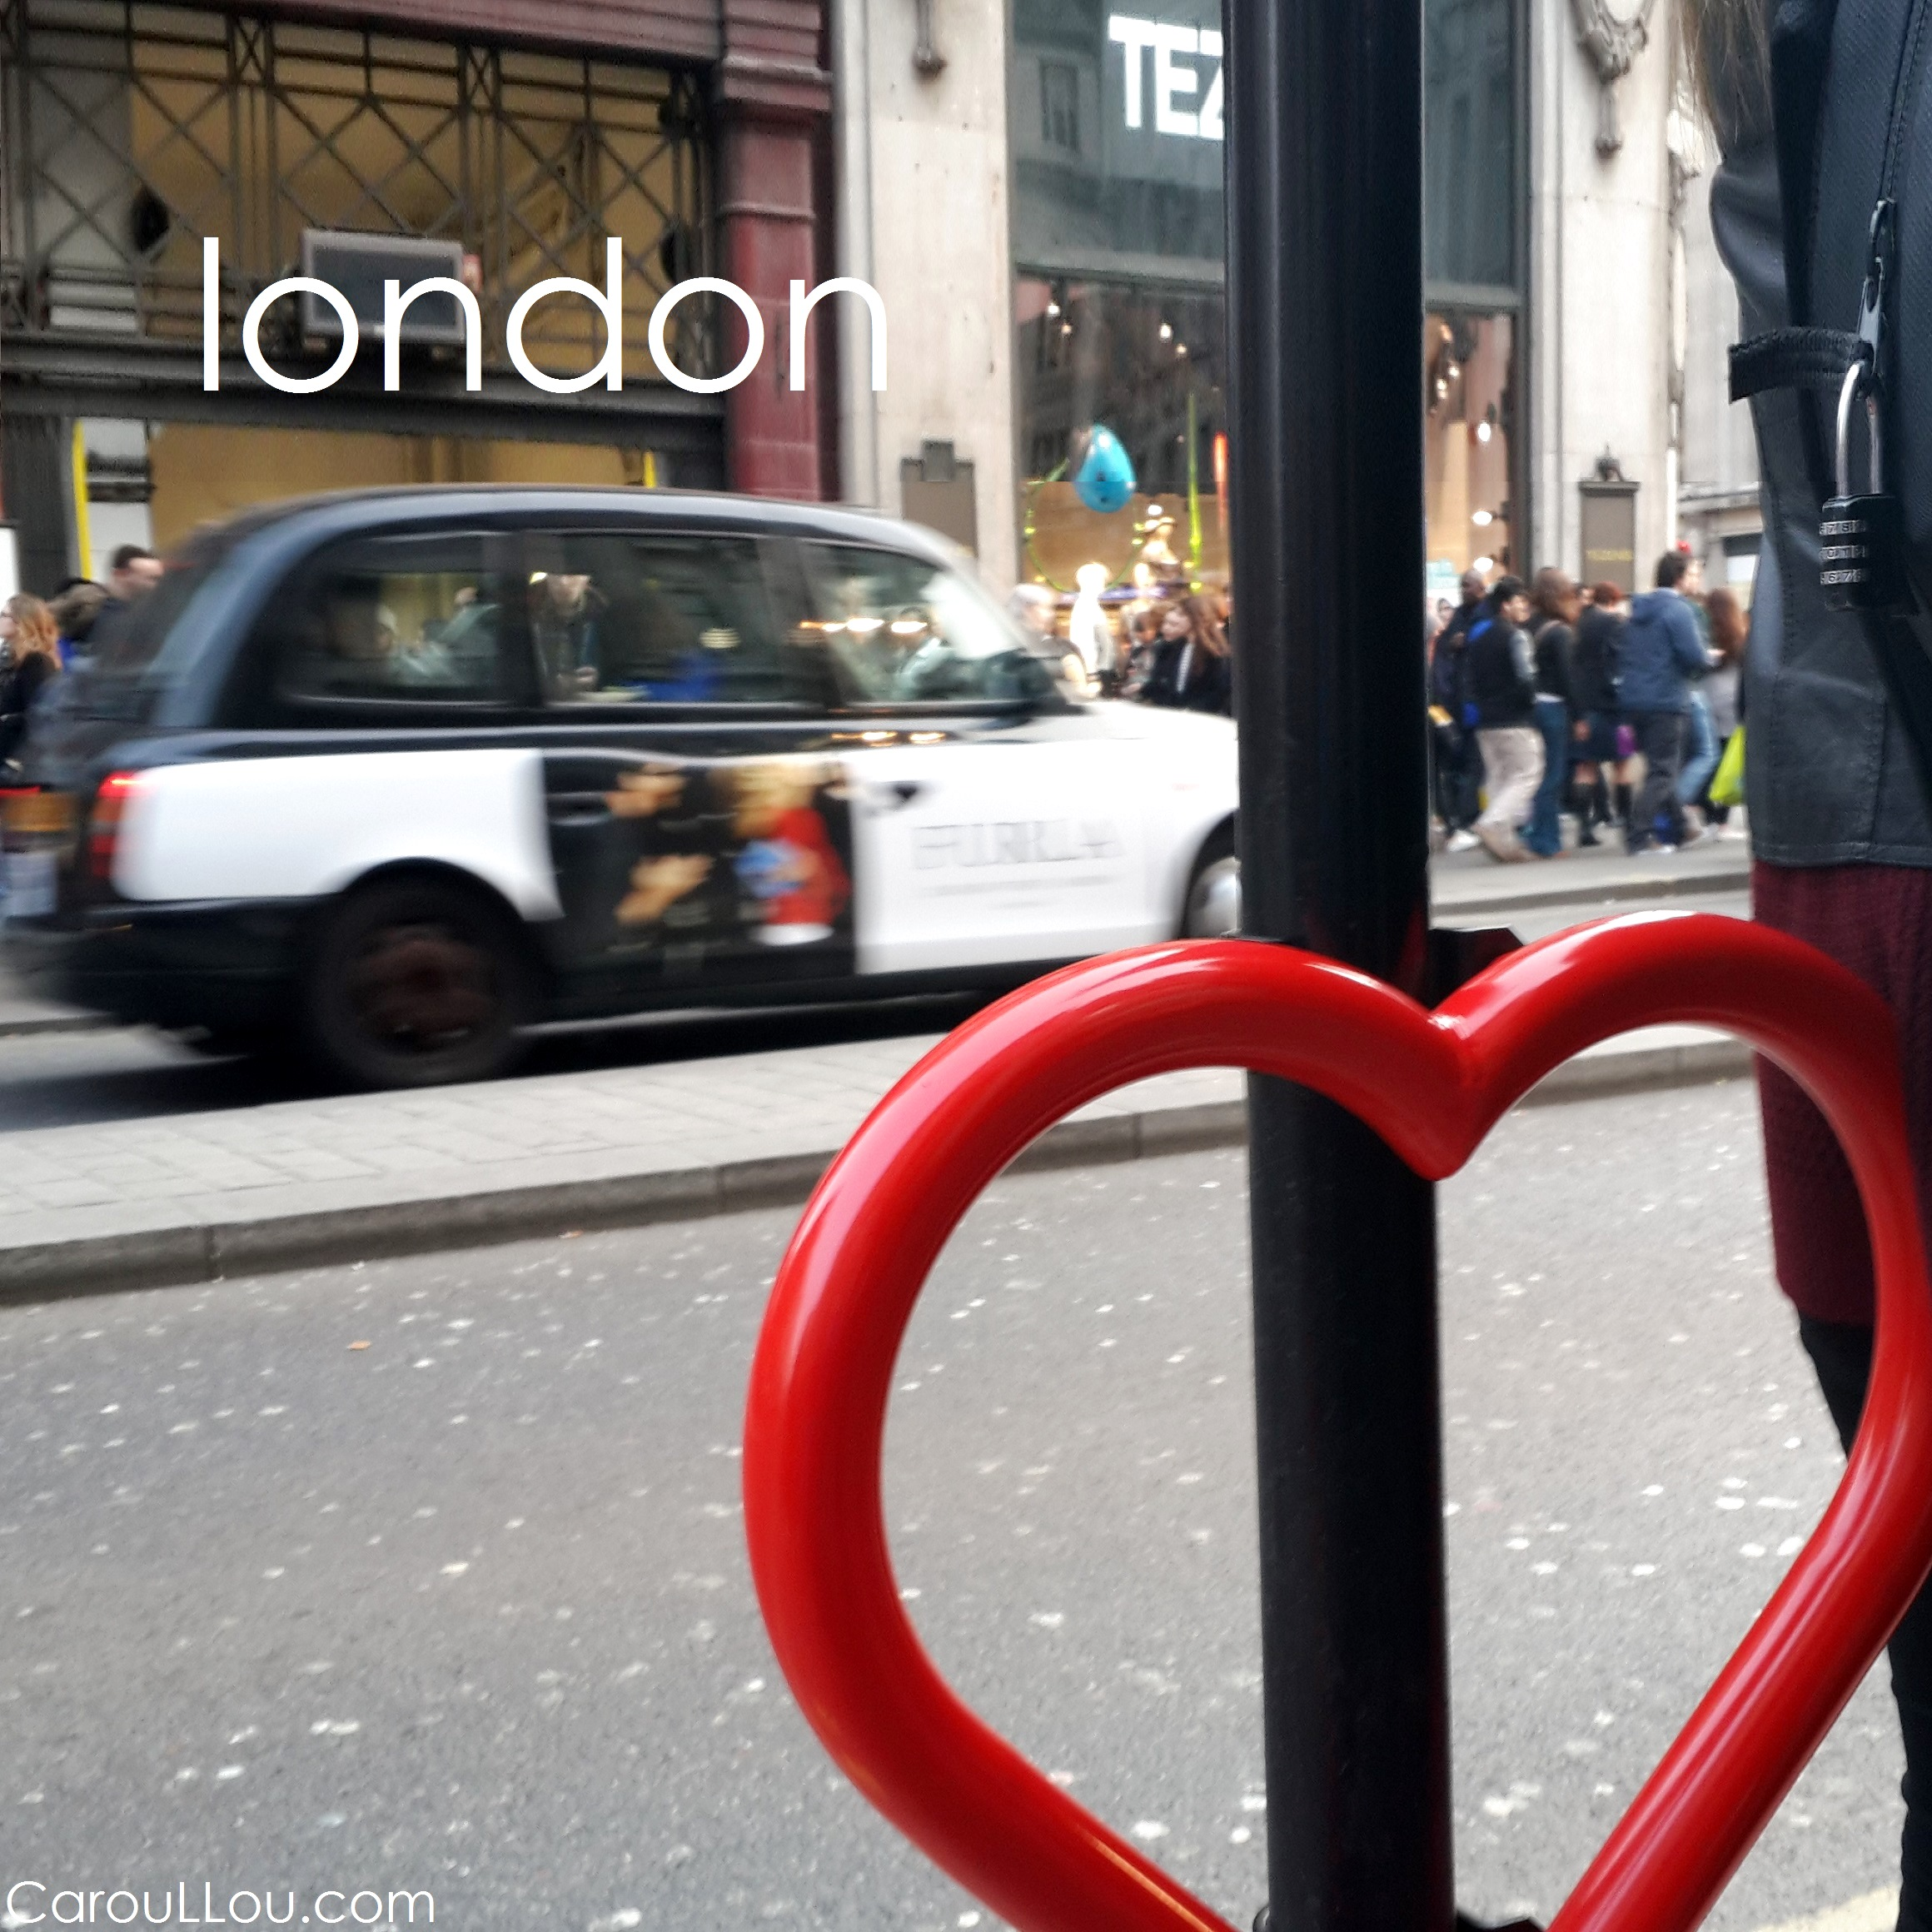 CarouLLou.com CarouLLou in London heart cab +-